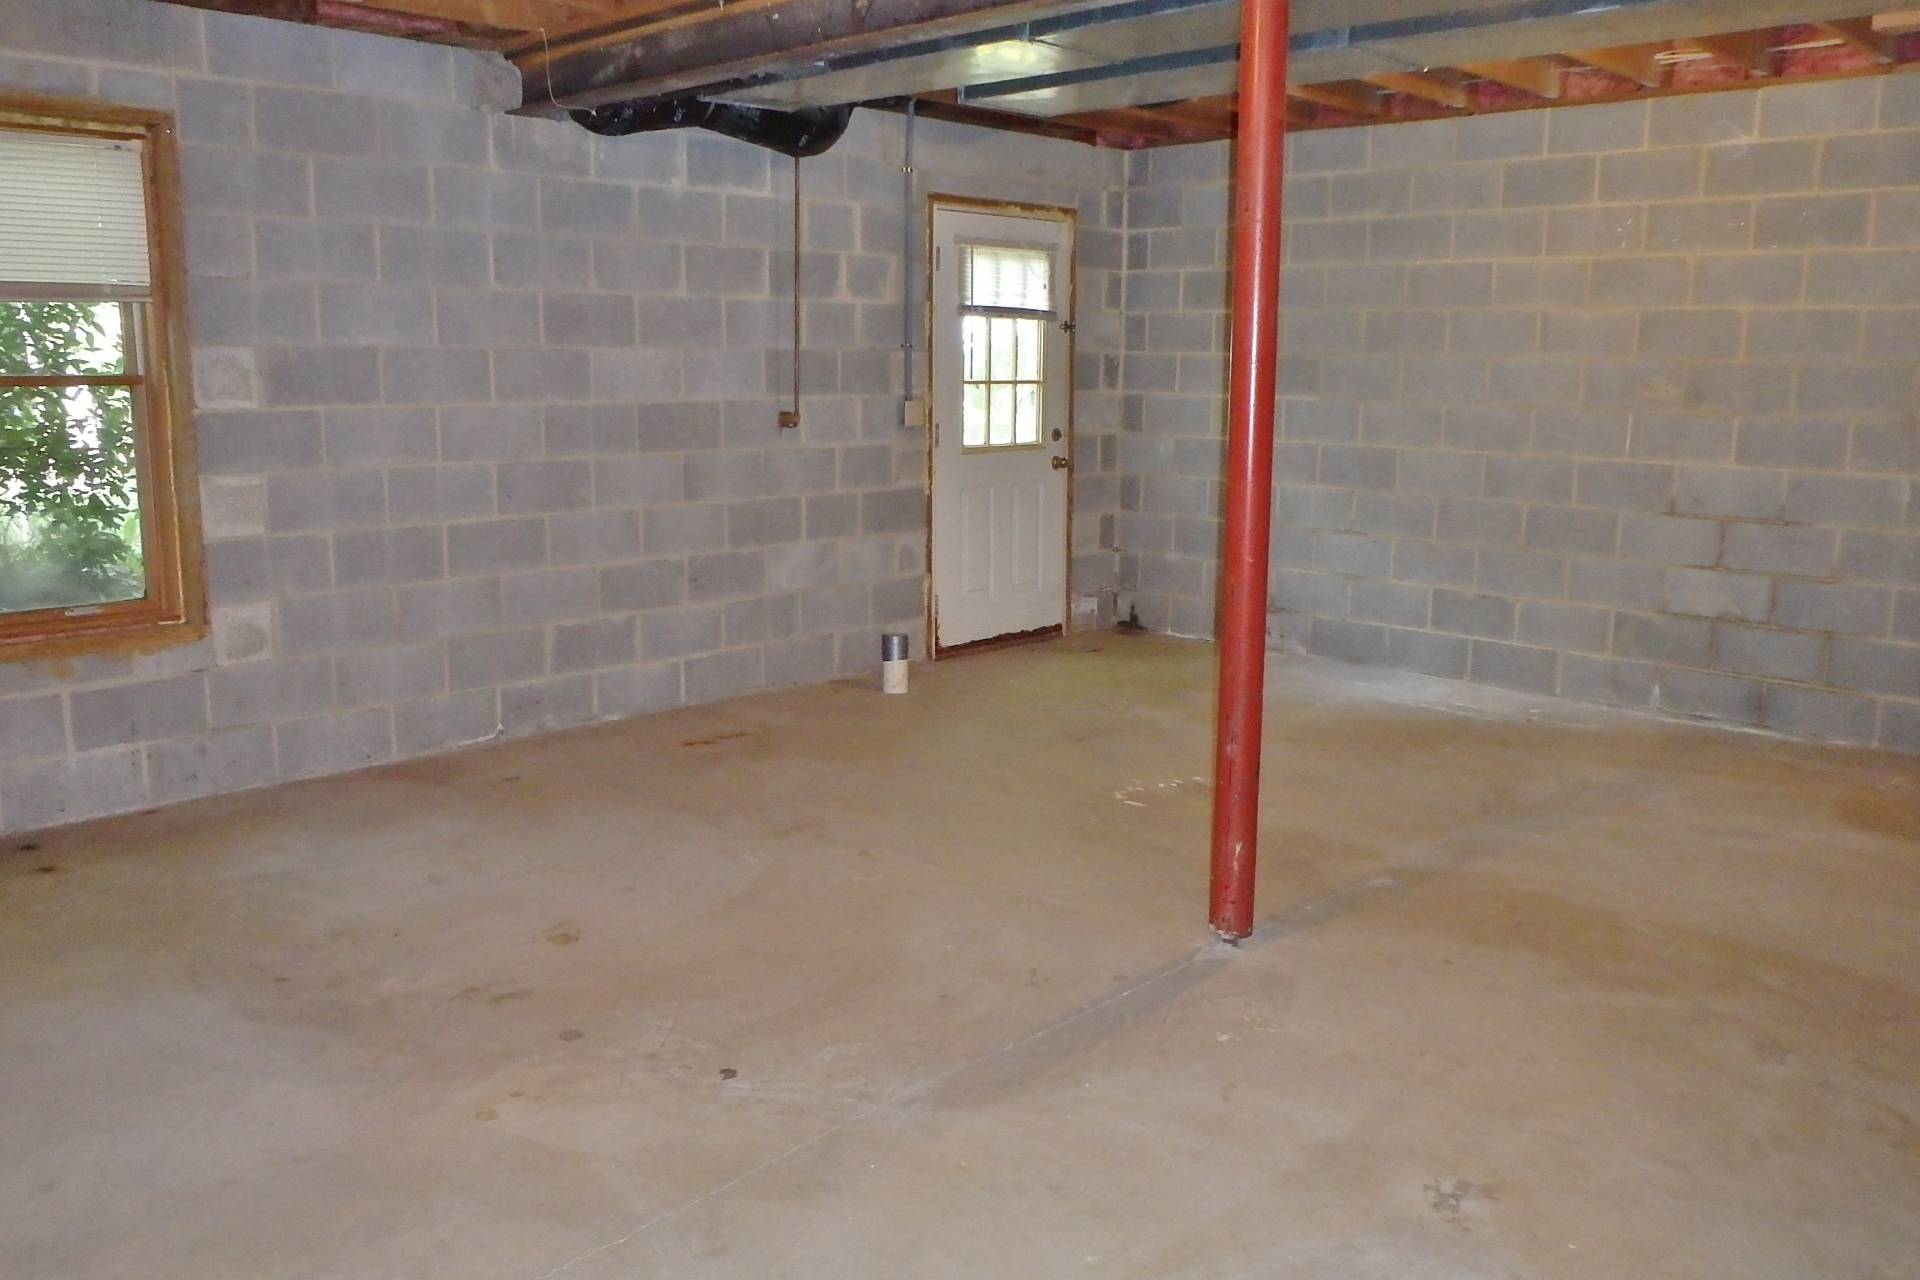 Unfinished basement at 317 Ghaner Drive.